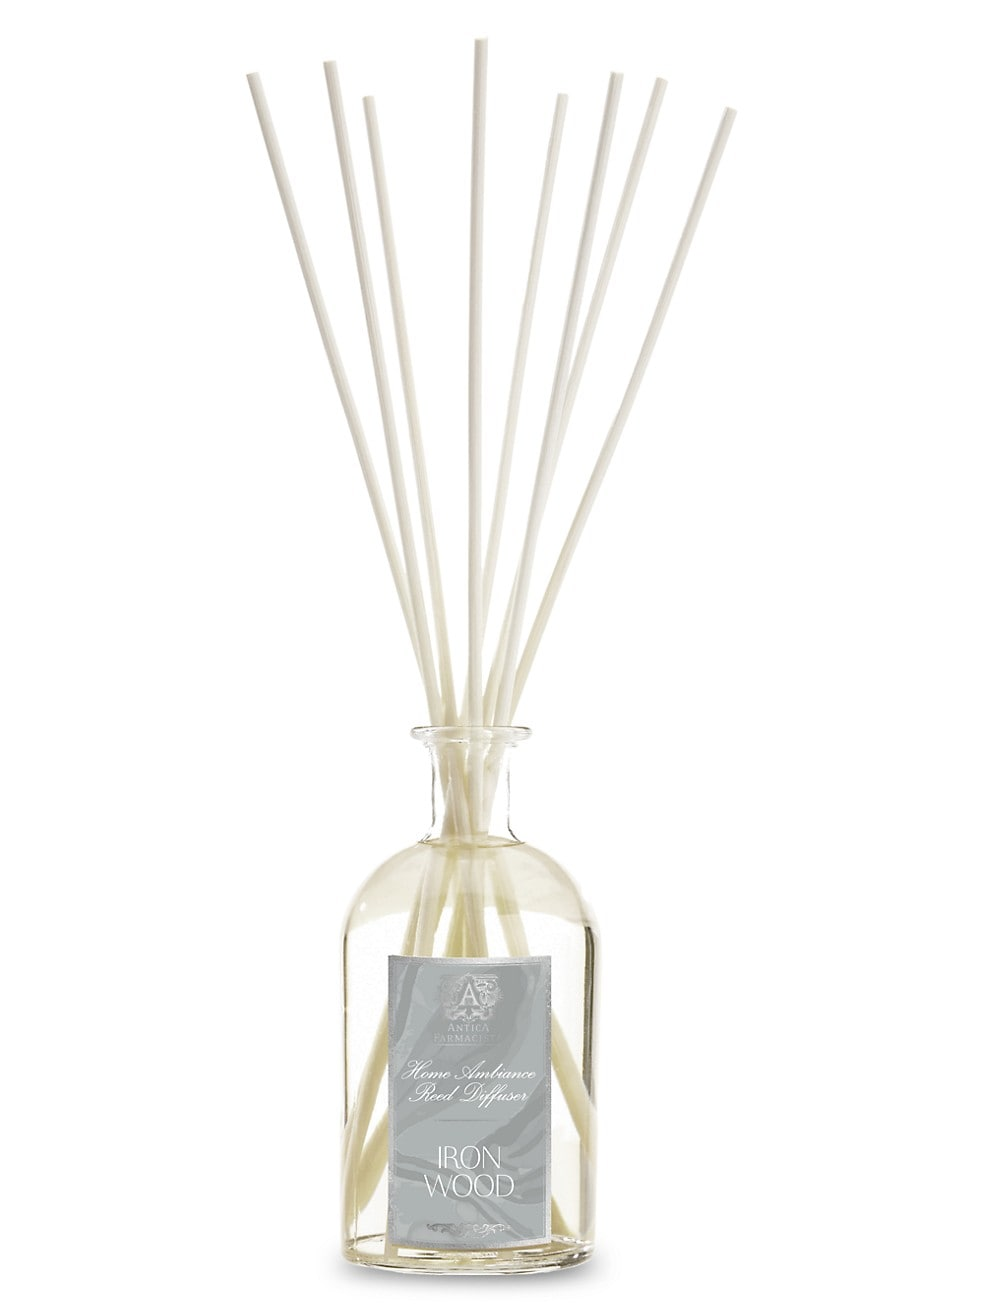 Antica Farmacista Iron Wood Home Ambiance Reed Diffuser